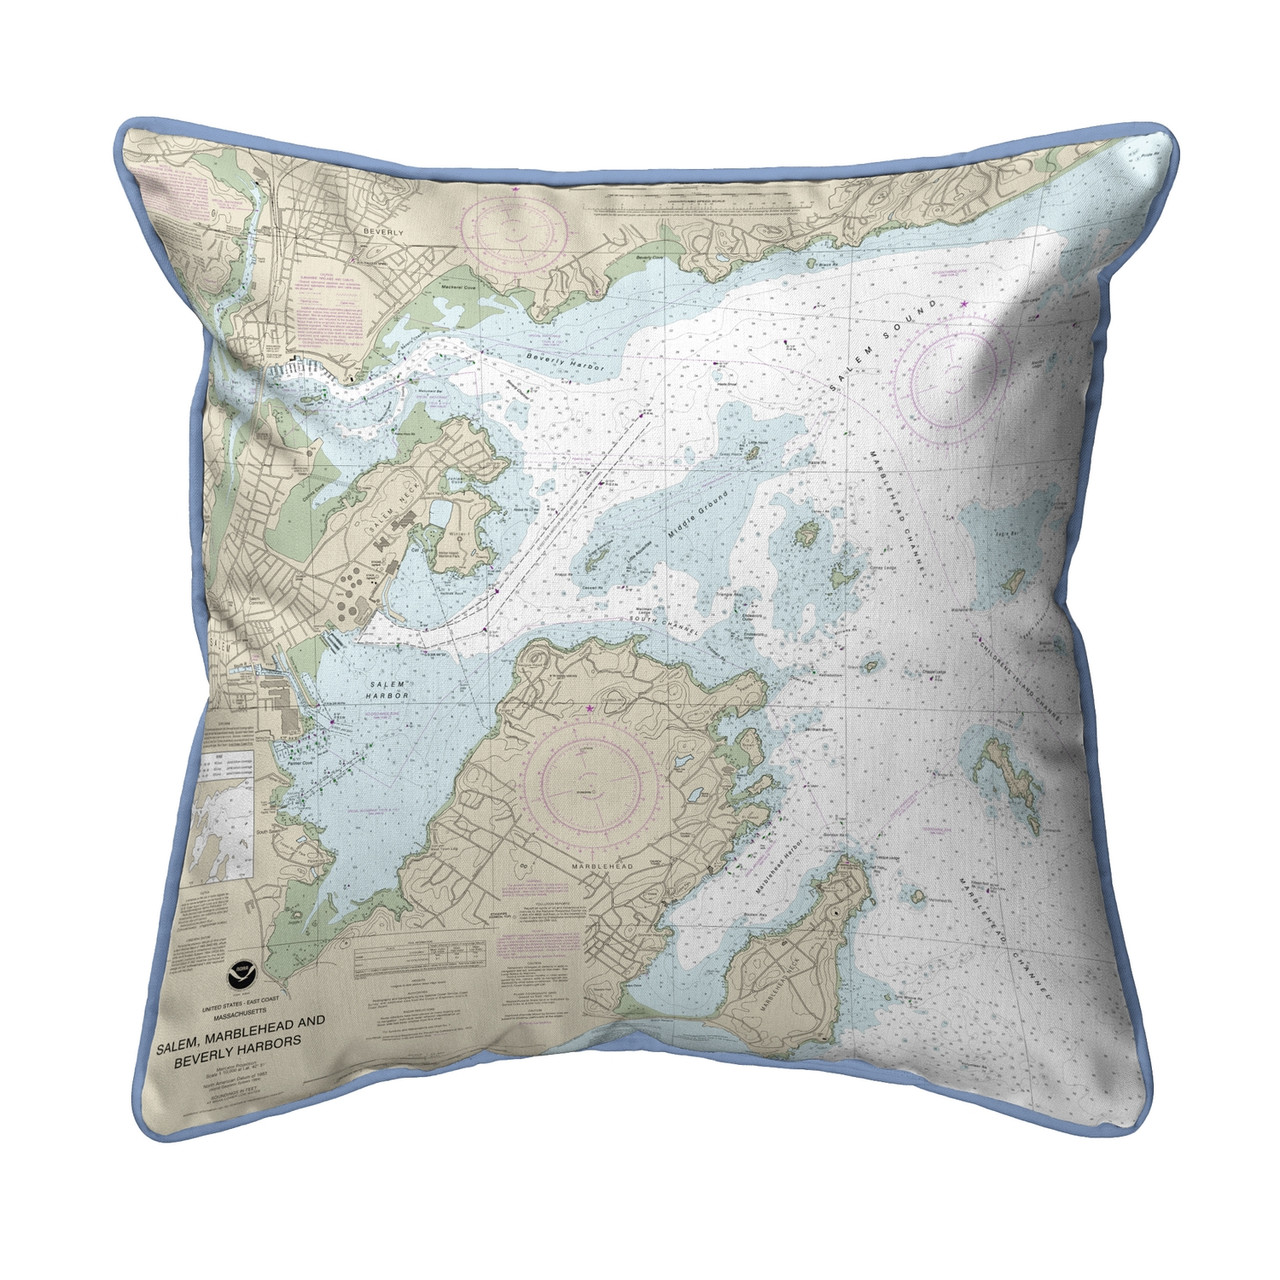 Betsy Drake Salem, Marblehead MA Nautical Map Corded Pillow 18x18 on map of olivet, map of surrounding, map of yamhill co, map of dwight, map of north newton, map of carlinville, map of northern essex community college, map massachusetts, map of spring city, map of west windsor, map of north chelmsford, map of new carlisle, map of springfield township, map of oak hill, map of colonia, map of crandall, map of ale, map of polk co, map of marion co, map of crabtree,